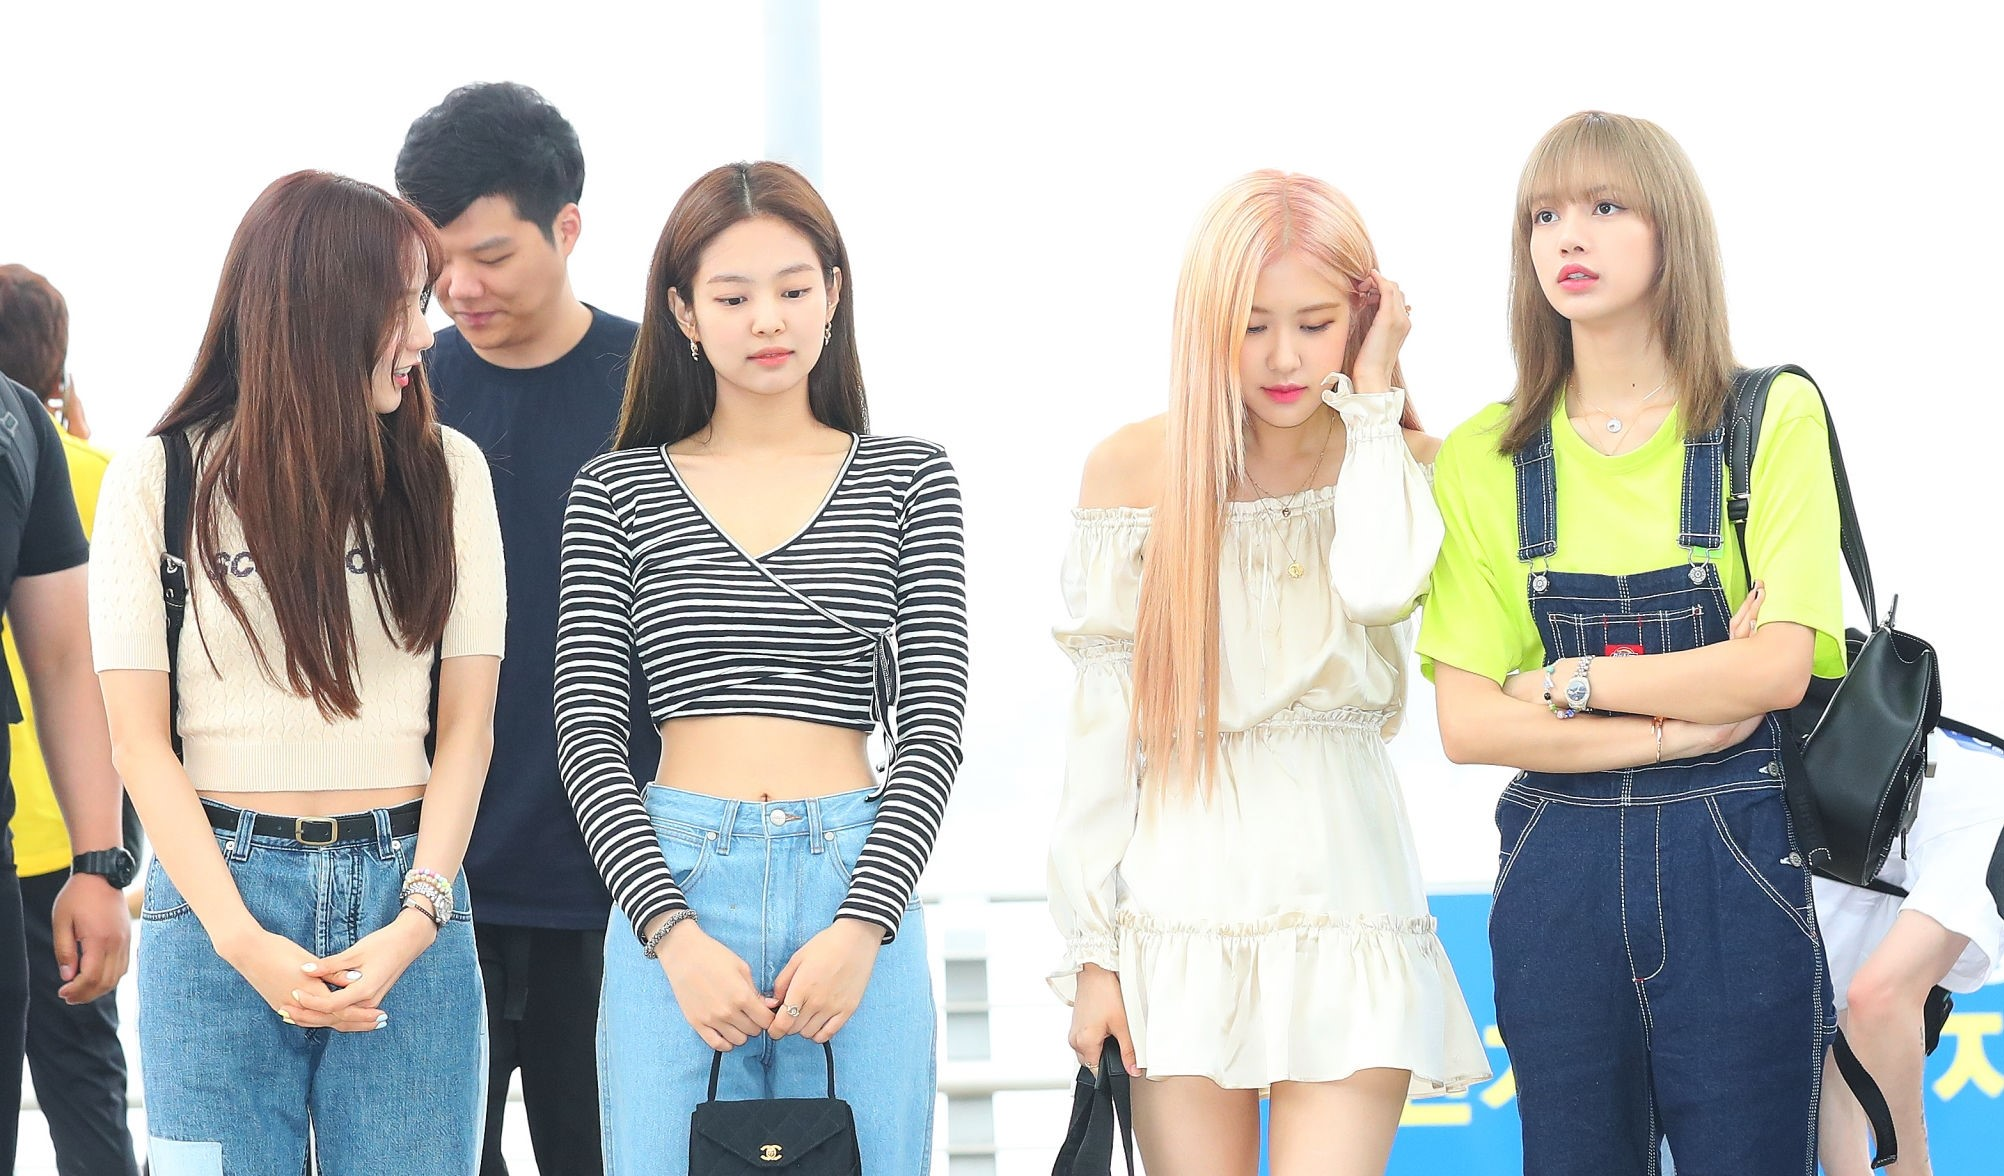 BLACKPINK ranks 2nd with the highest viewership on YouTube in the world